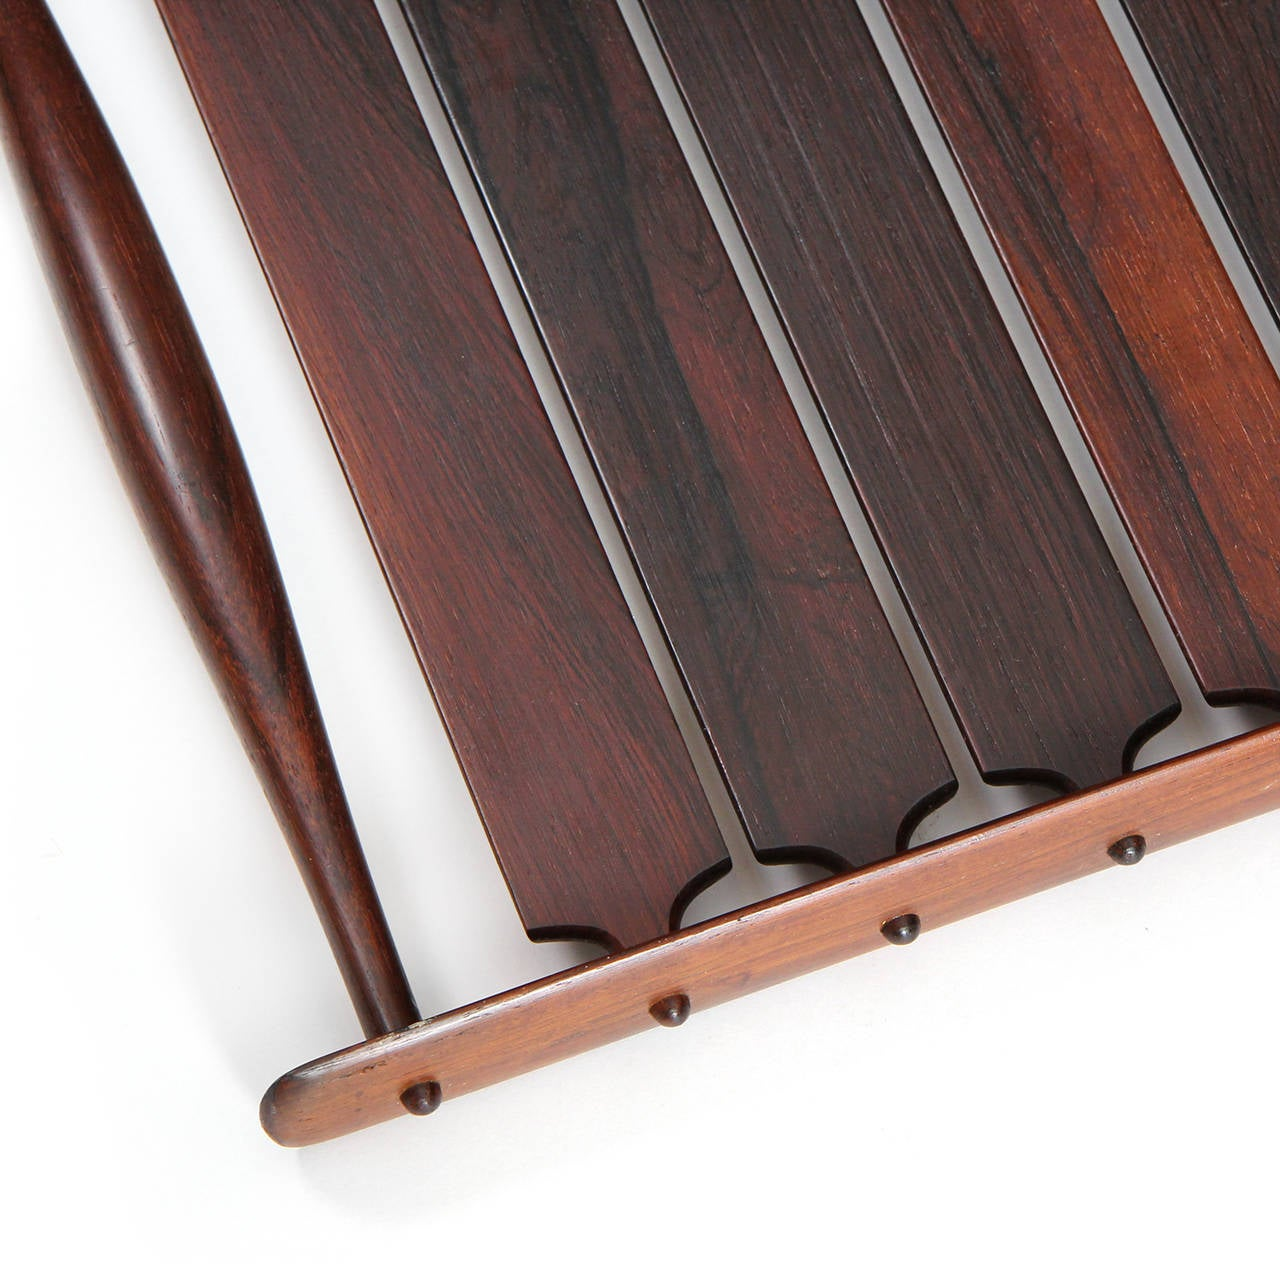 Slatted Rosewood Tray by Jens Quistgaard In Excellent Condition For Sale In Sagaponack, NY